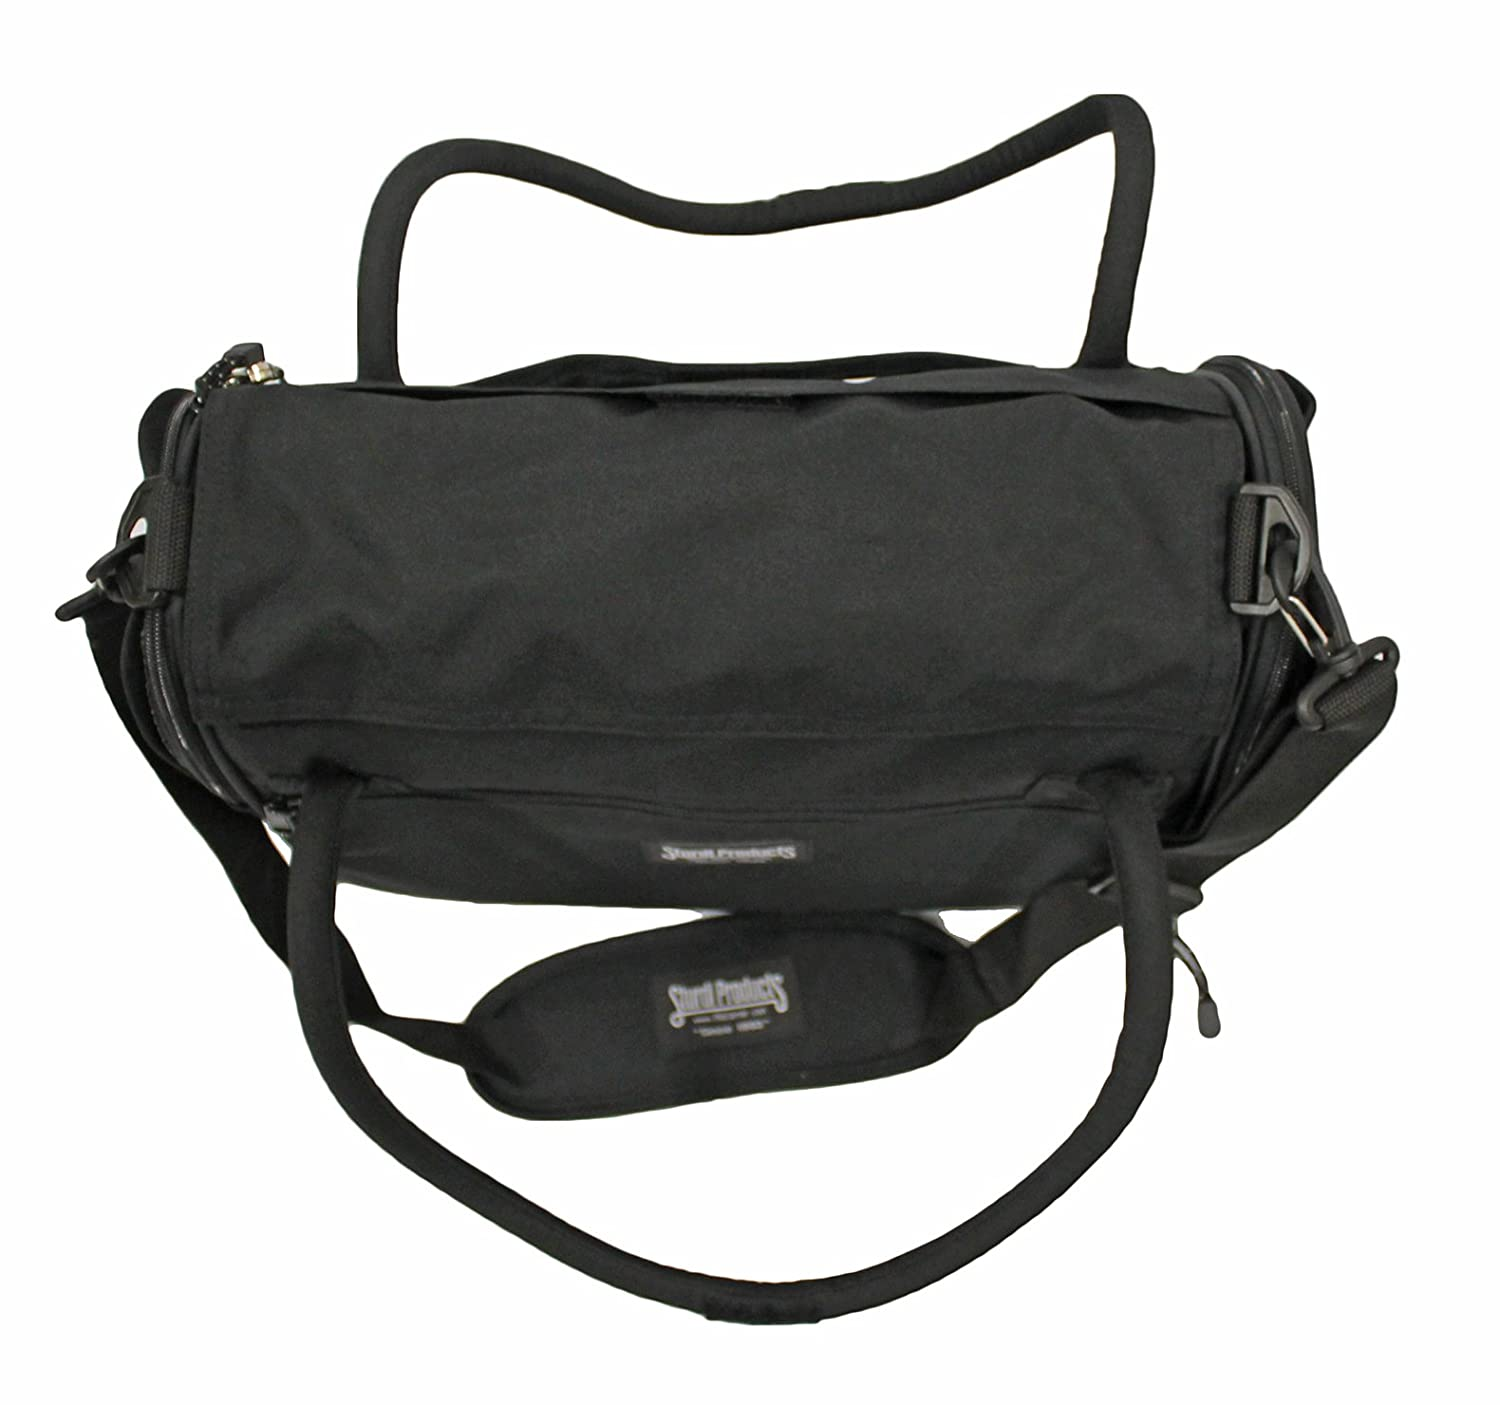 Black STURDI PRODUCTS Incognito Discrete Pet Carrier Tote